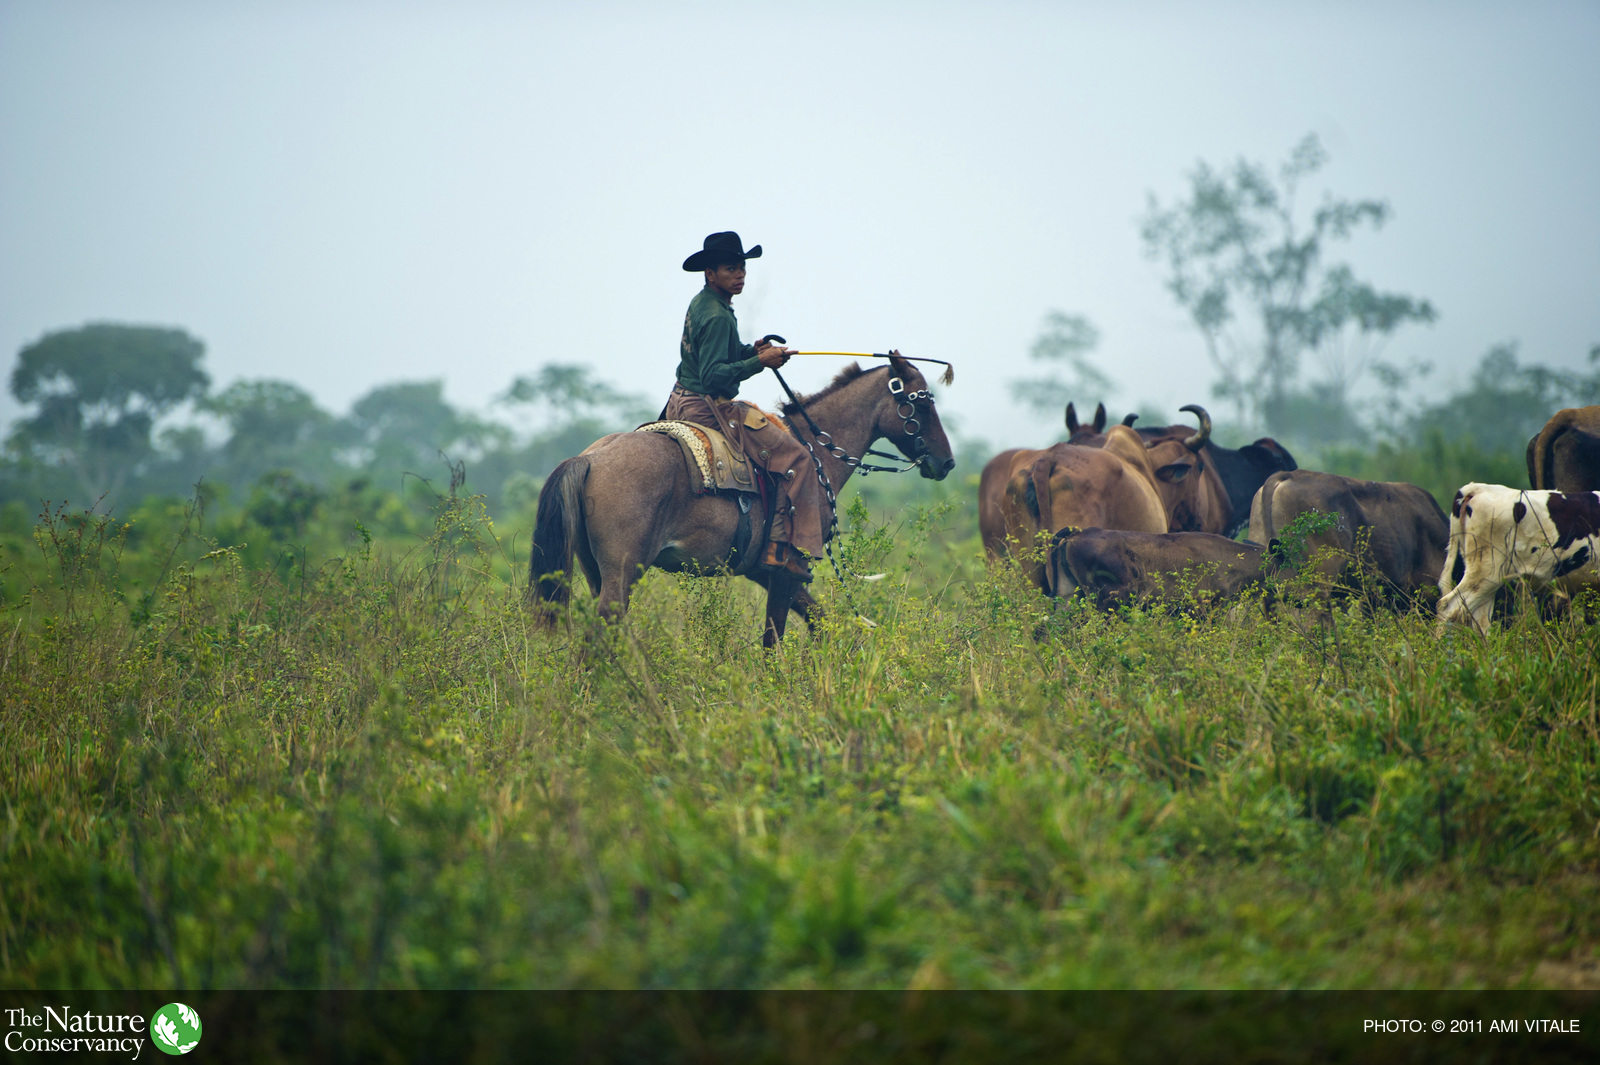 Joao Batista Dos Santos Fortado herds cattle on the Ponderosa  farm in Paragominas-Pará, a municipality in the Brazilian Amazon. Understanding that conversion to agriculture and cattle ranching is the greatest threat to the Amazon rainforest, the Conserv